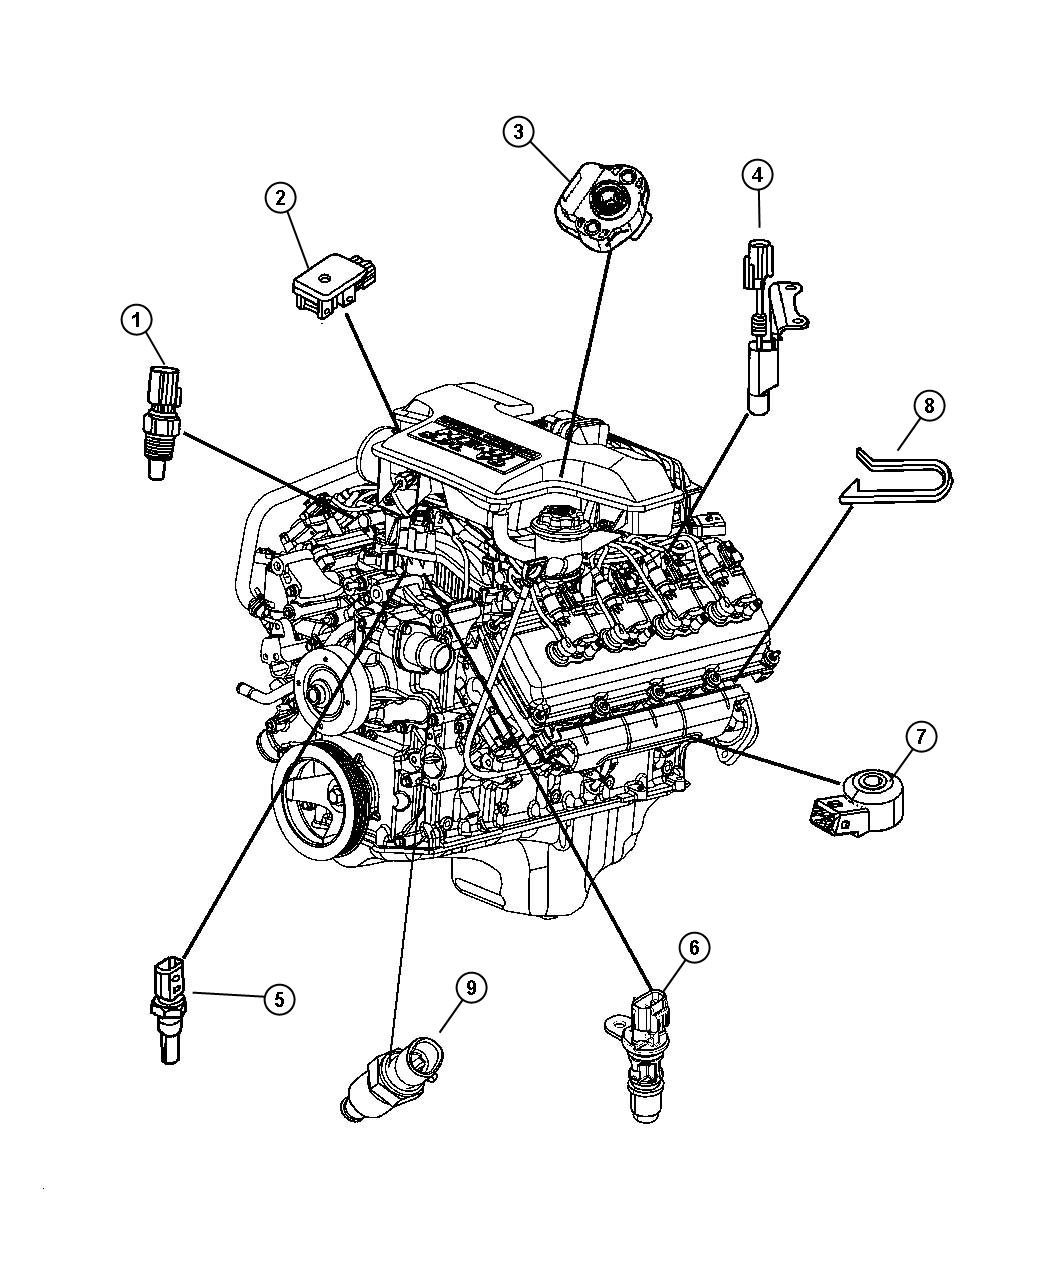 5 7l Chevy Engine Parts Diagram, 5, Free Engine Image For